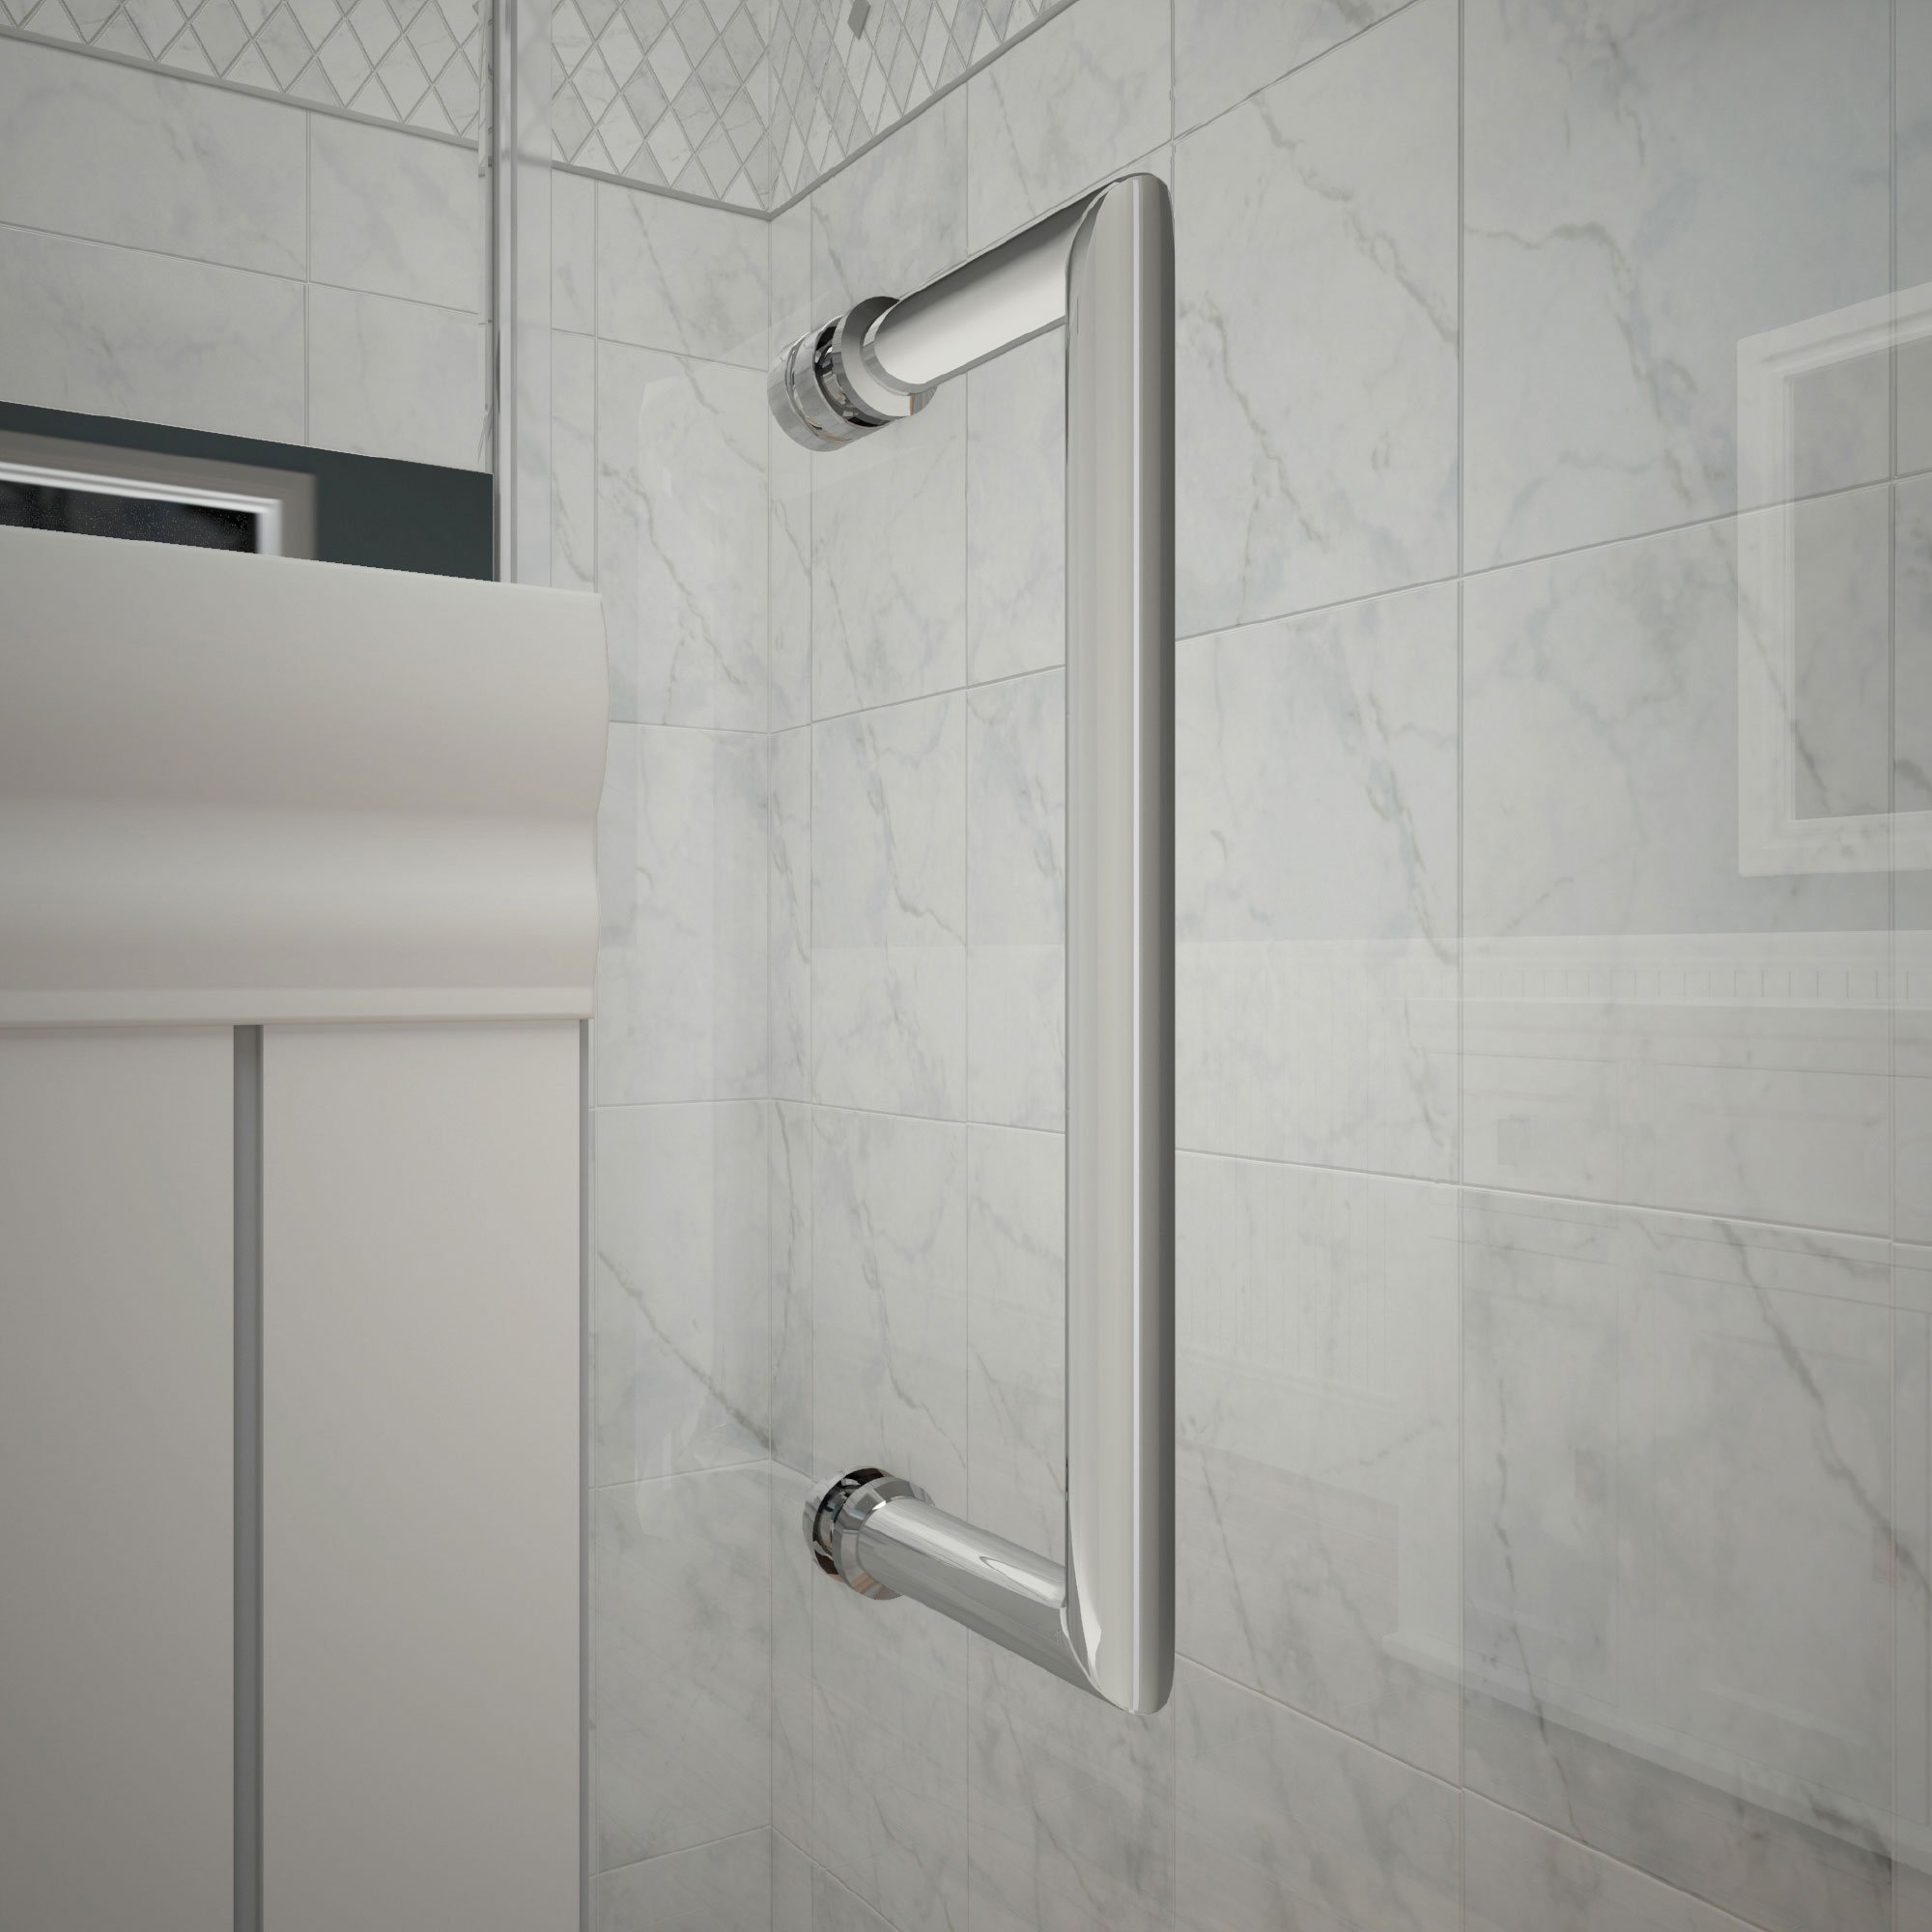 DreamLine Unidoor Lux 56 in. Width, Frameless Hinged Shower Door, 3/8'' Glass, Chrome Finish by DreamLine (Image #4)